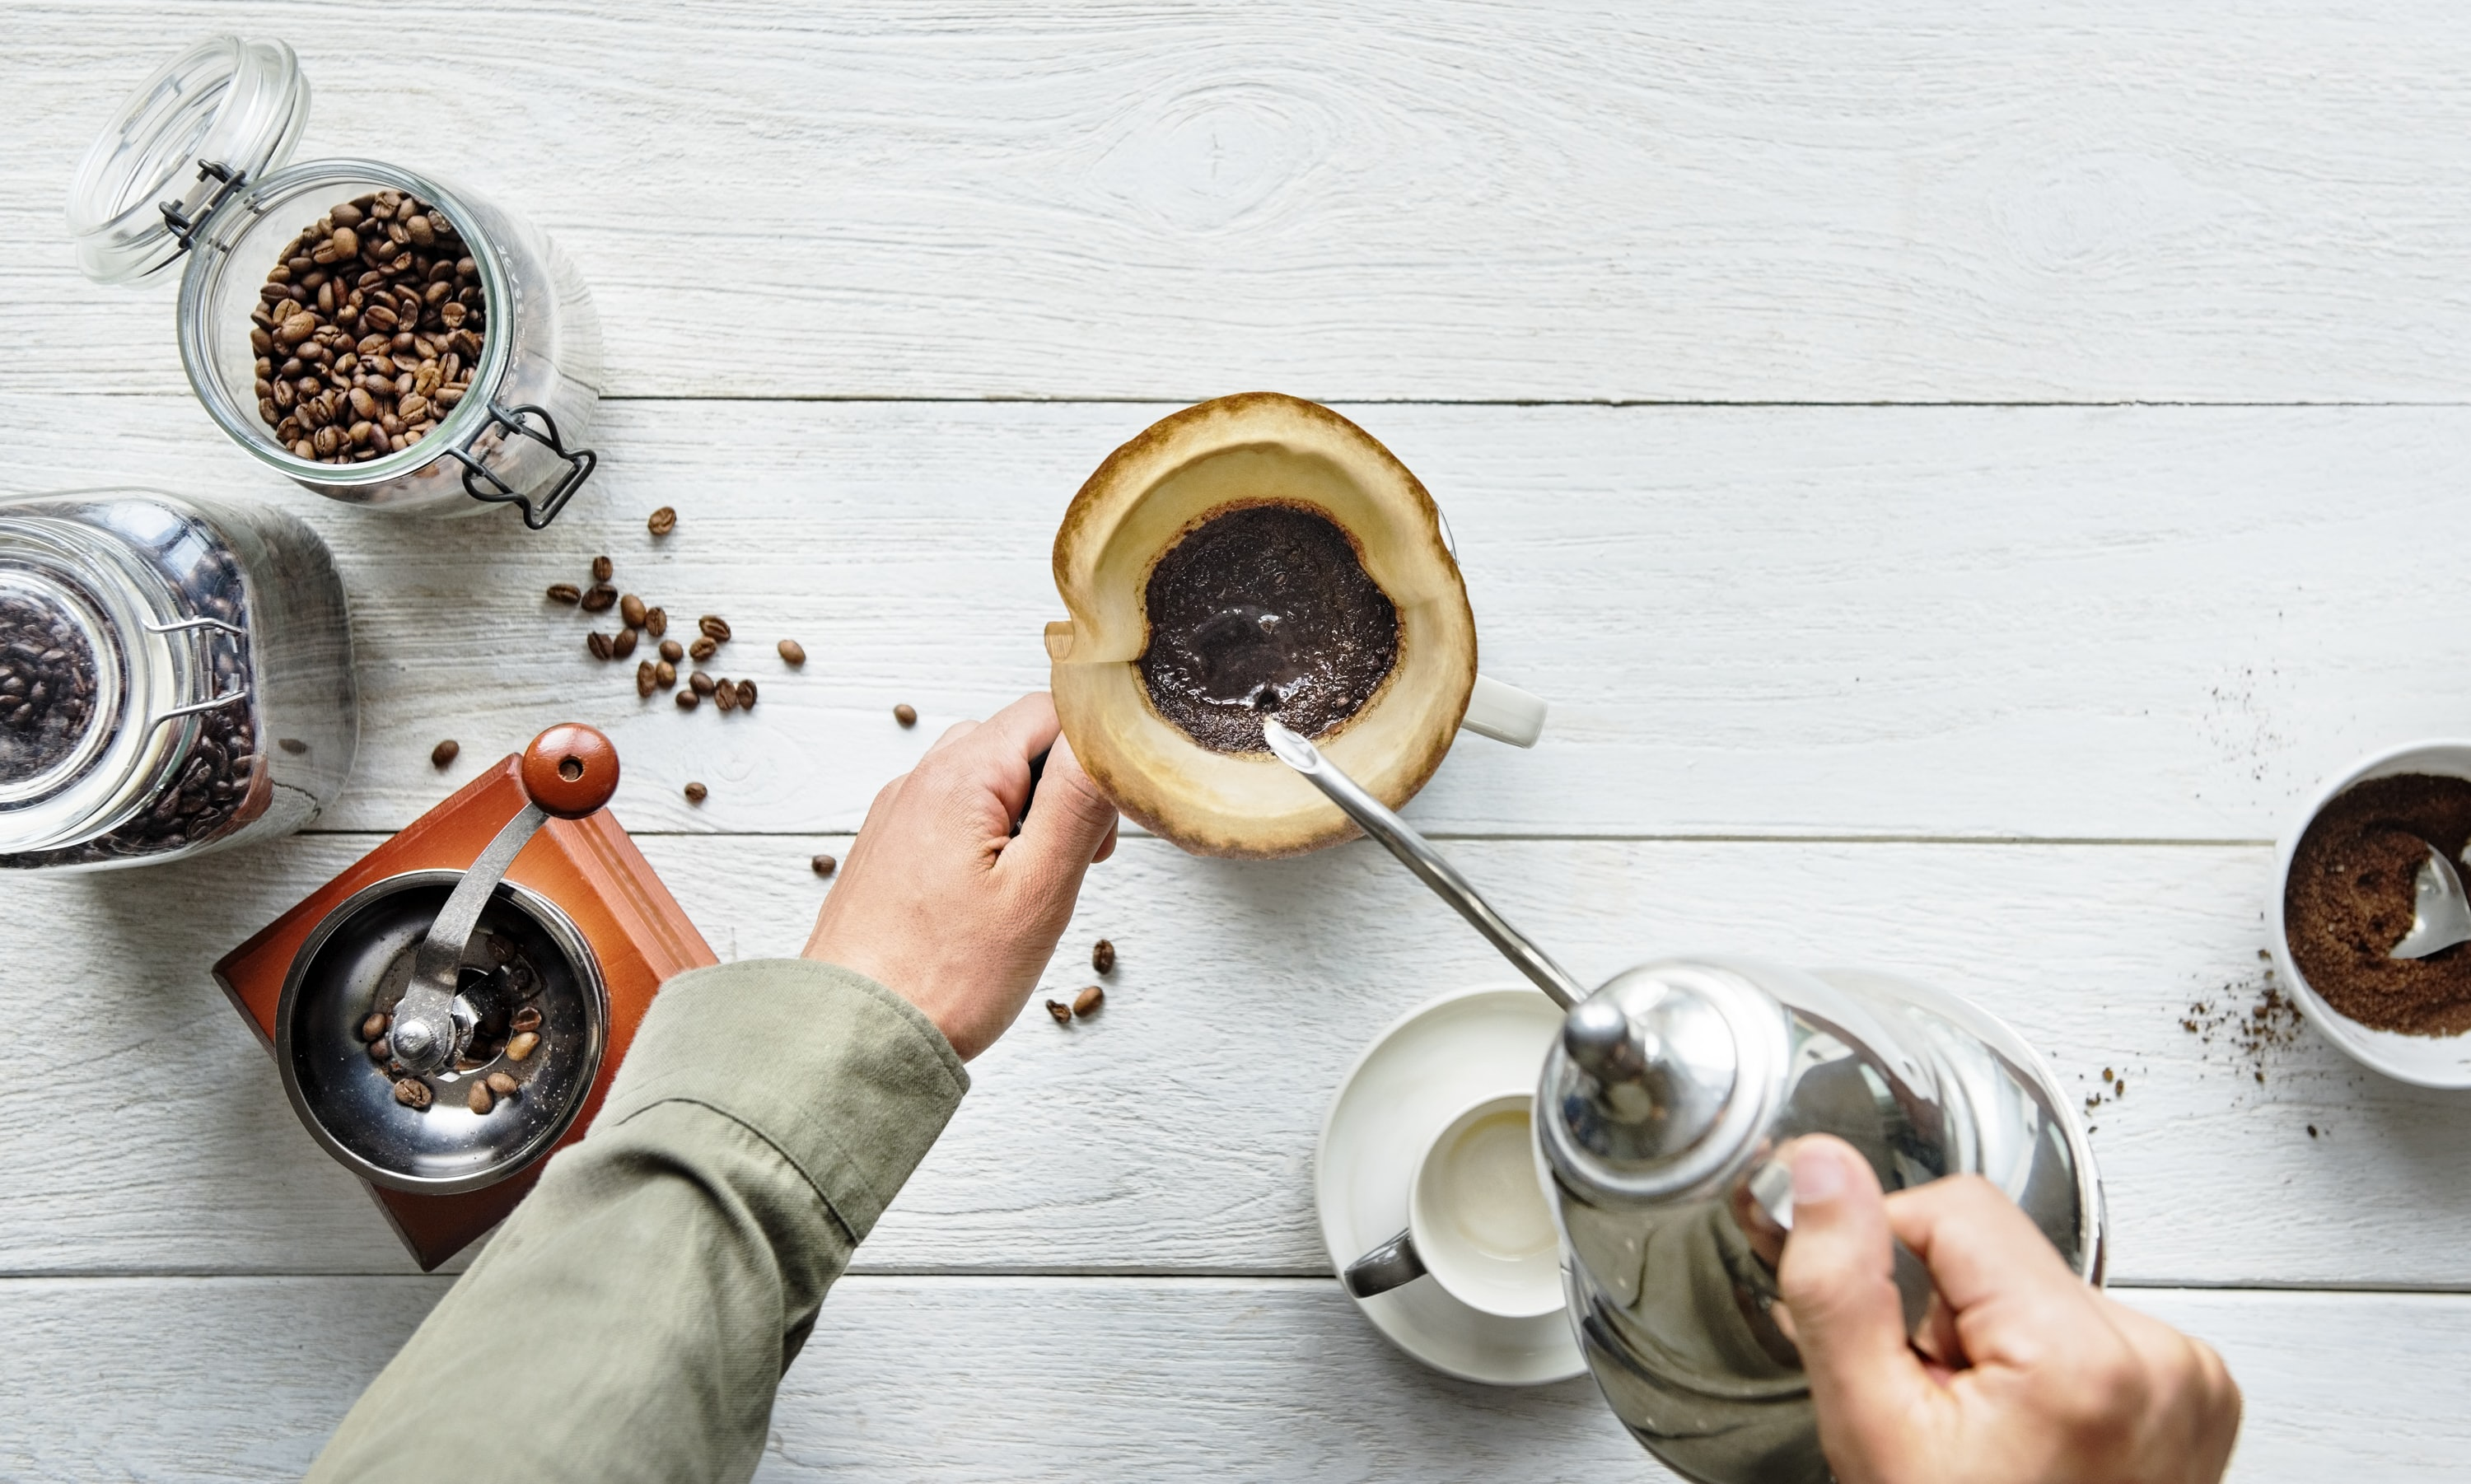 person pouring liquid in brown mug